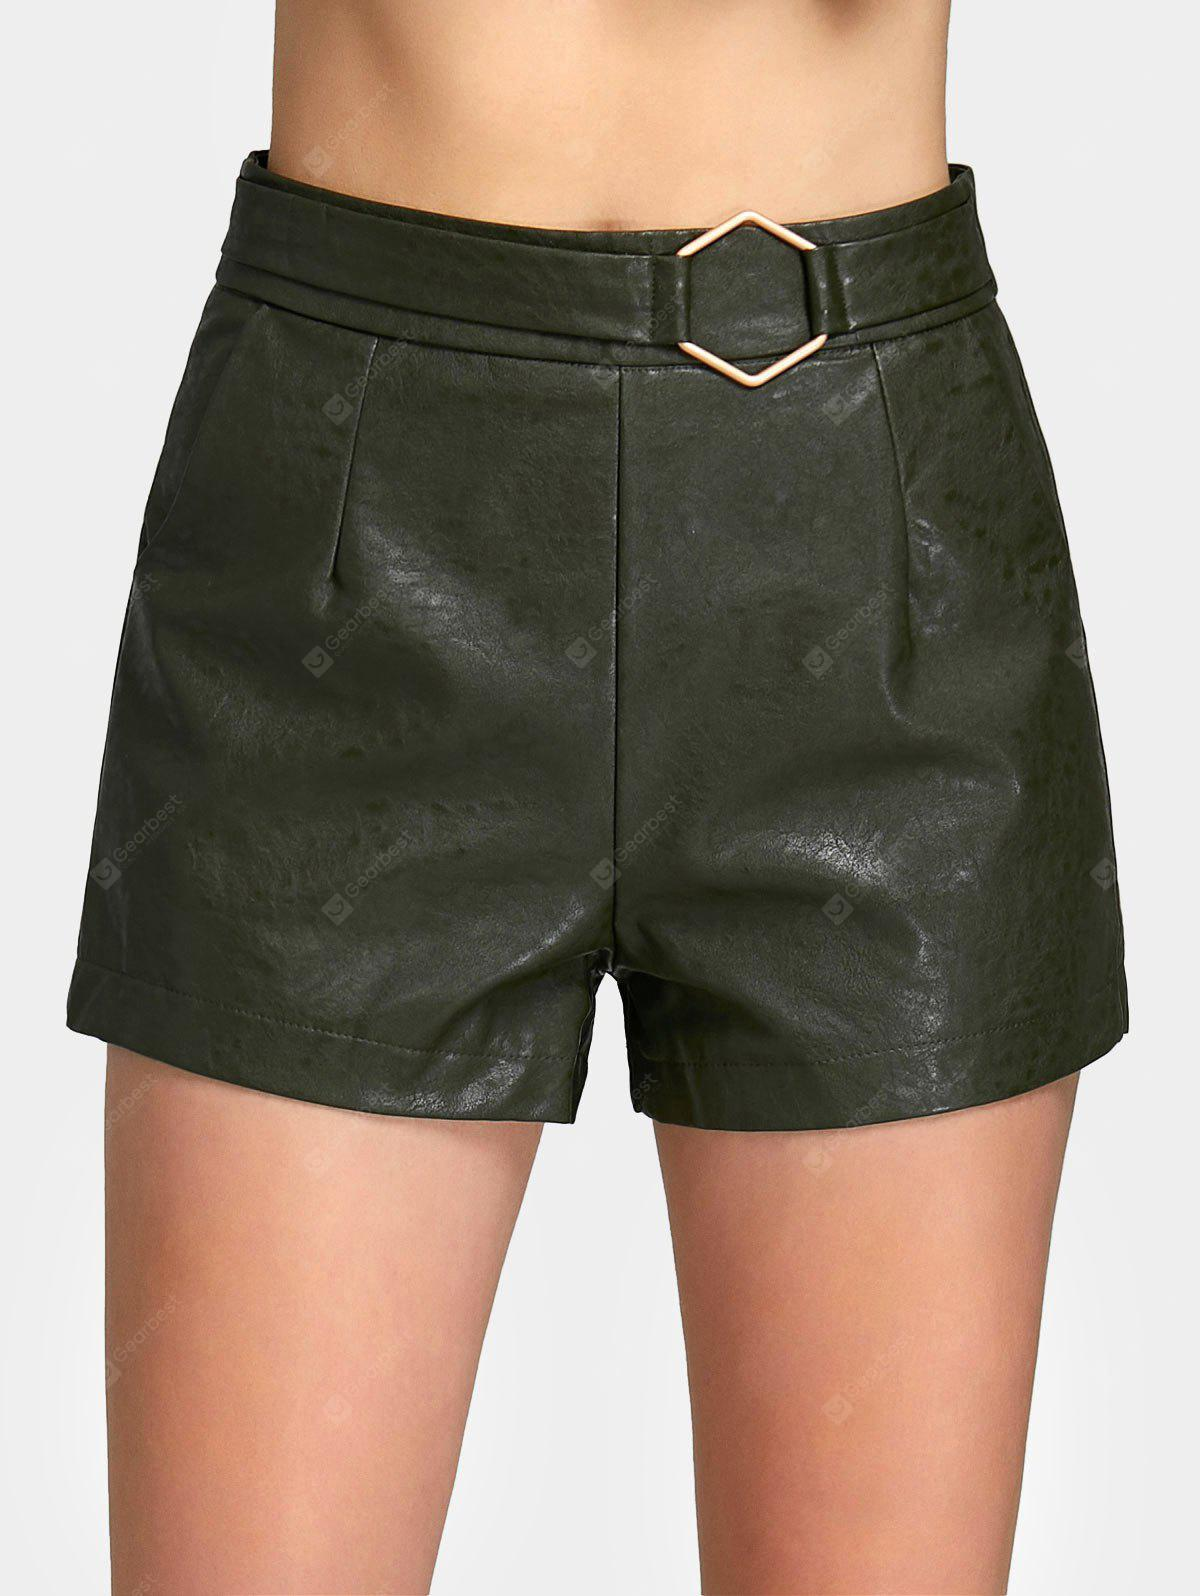 ARMY GREEN L Metal Geometry PU Leather High Waist Shorts